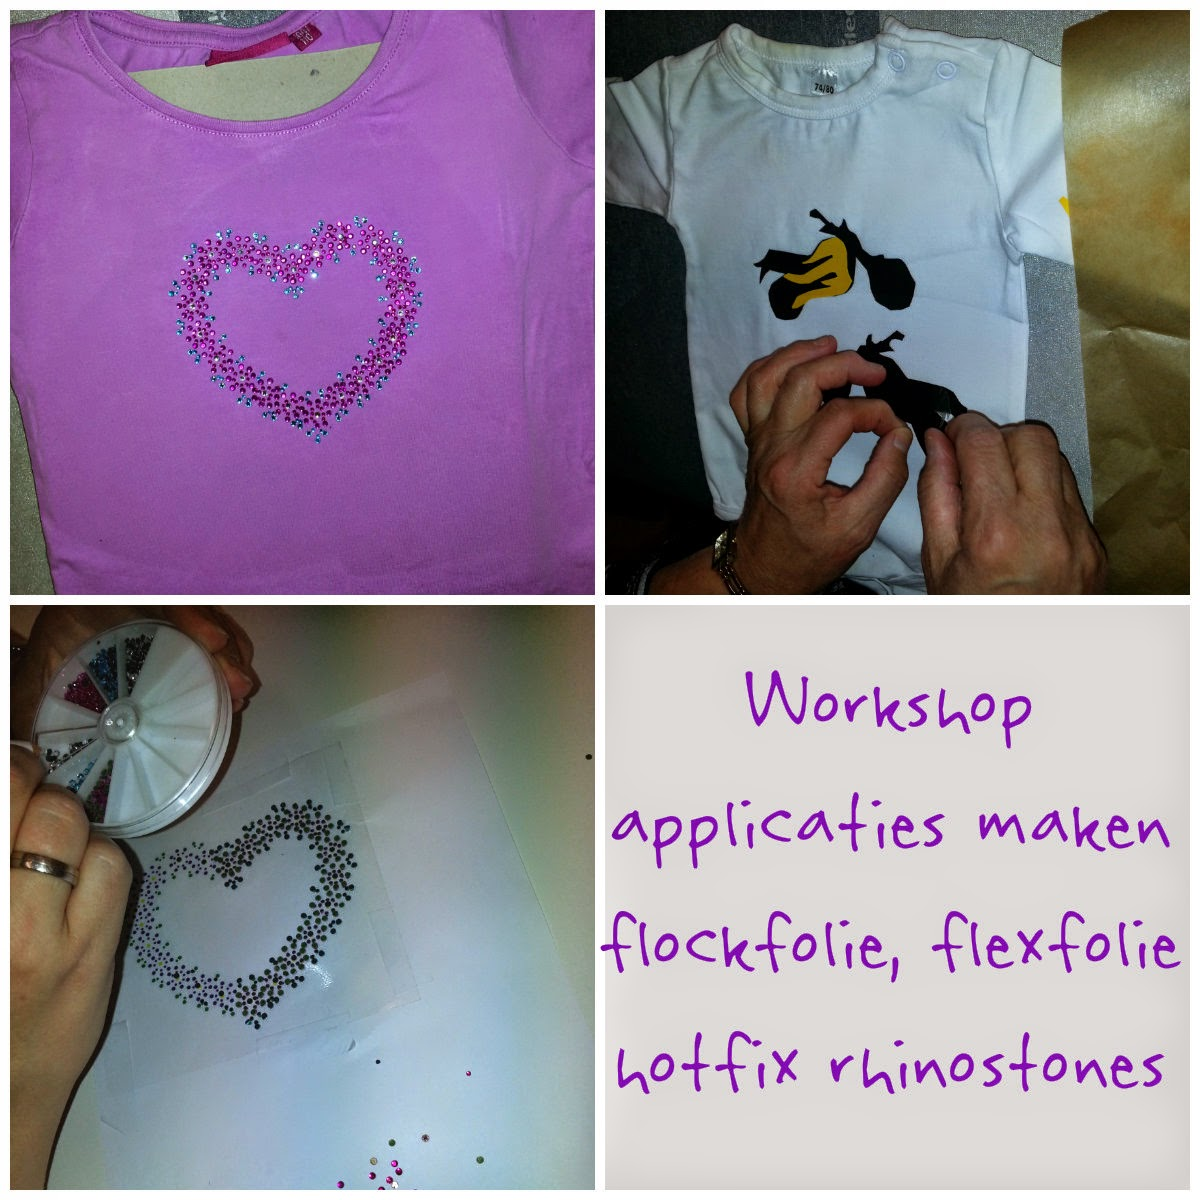 workshop applicaties maken van flexfolie, flockfolie en hotfix rhinostones